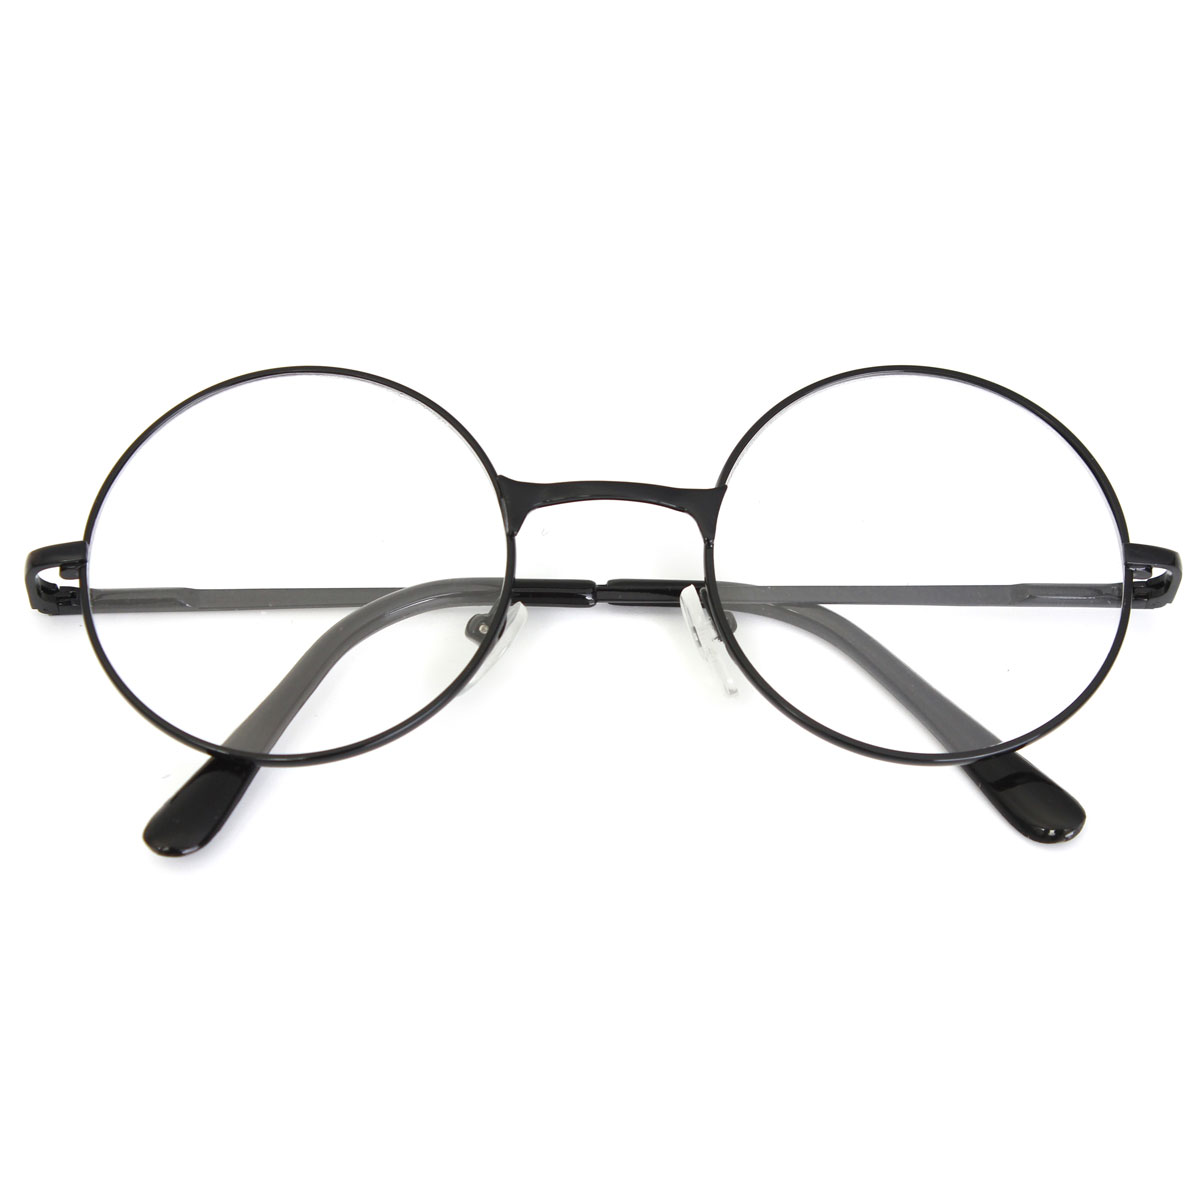 Unisex Men Women Resin Round Oval Metal Rim Presbyopic Reading Glasses Vintage Eyeglasses